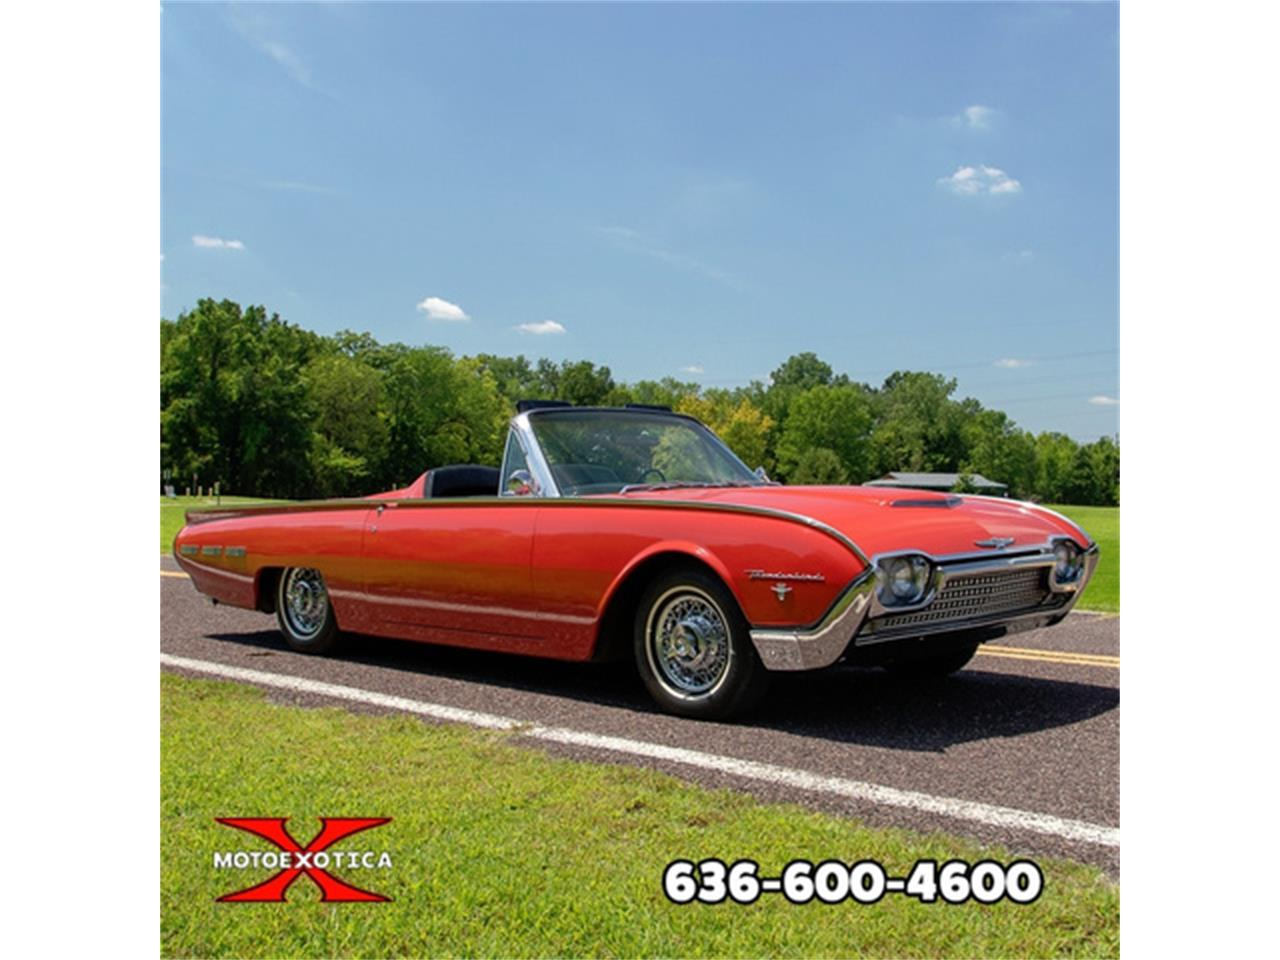 Large Picture of '62 Thunderbird located in Missouri - $27,500.00 - QXLJ